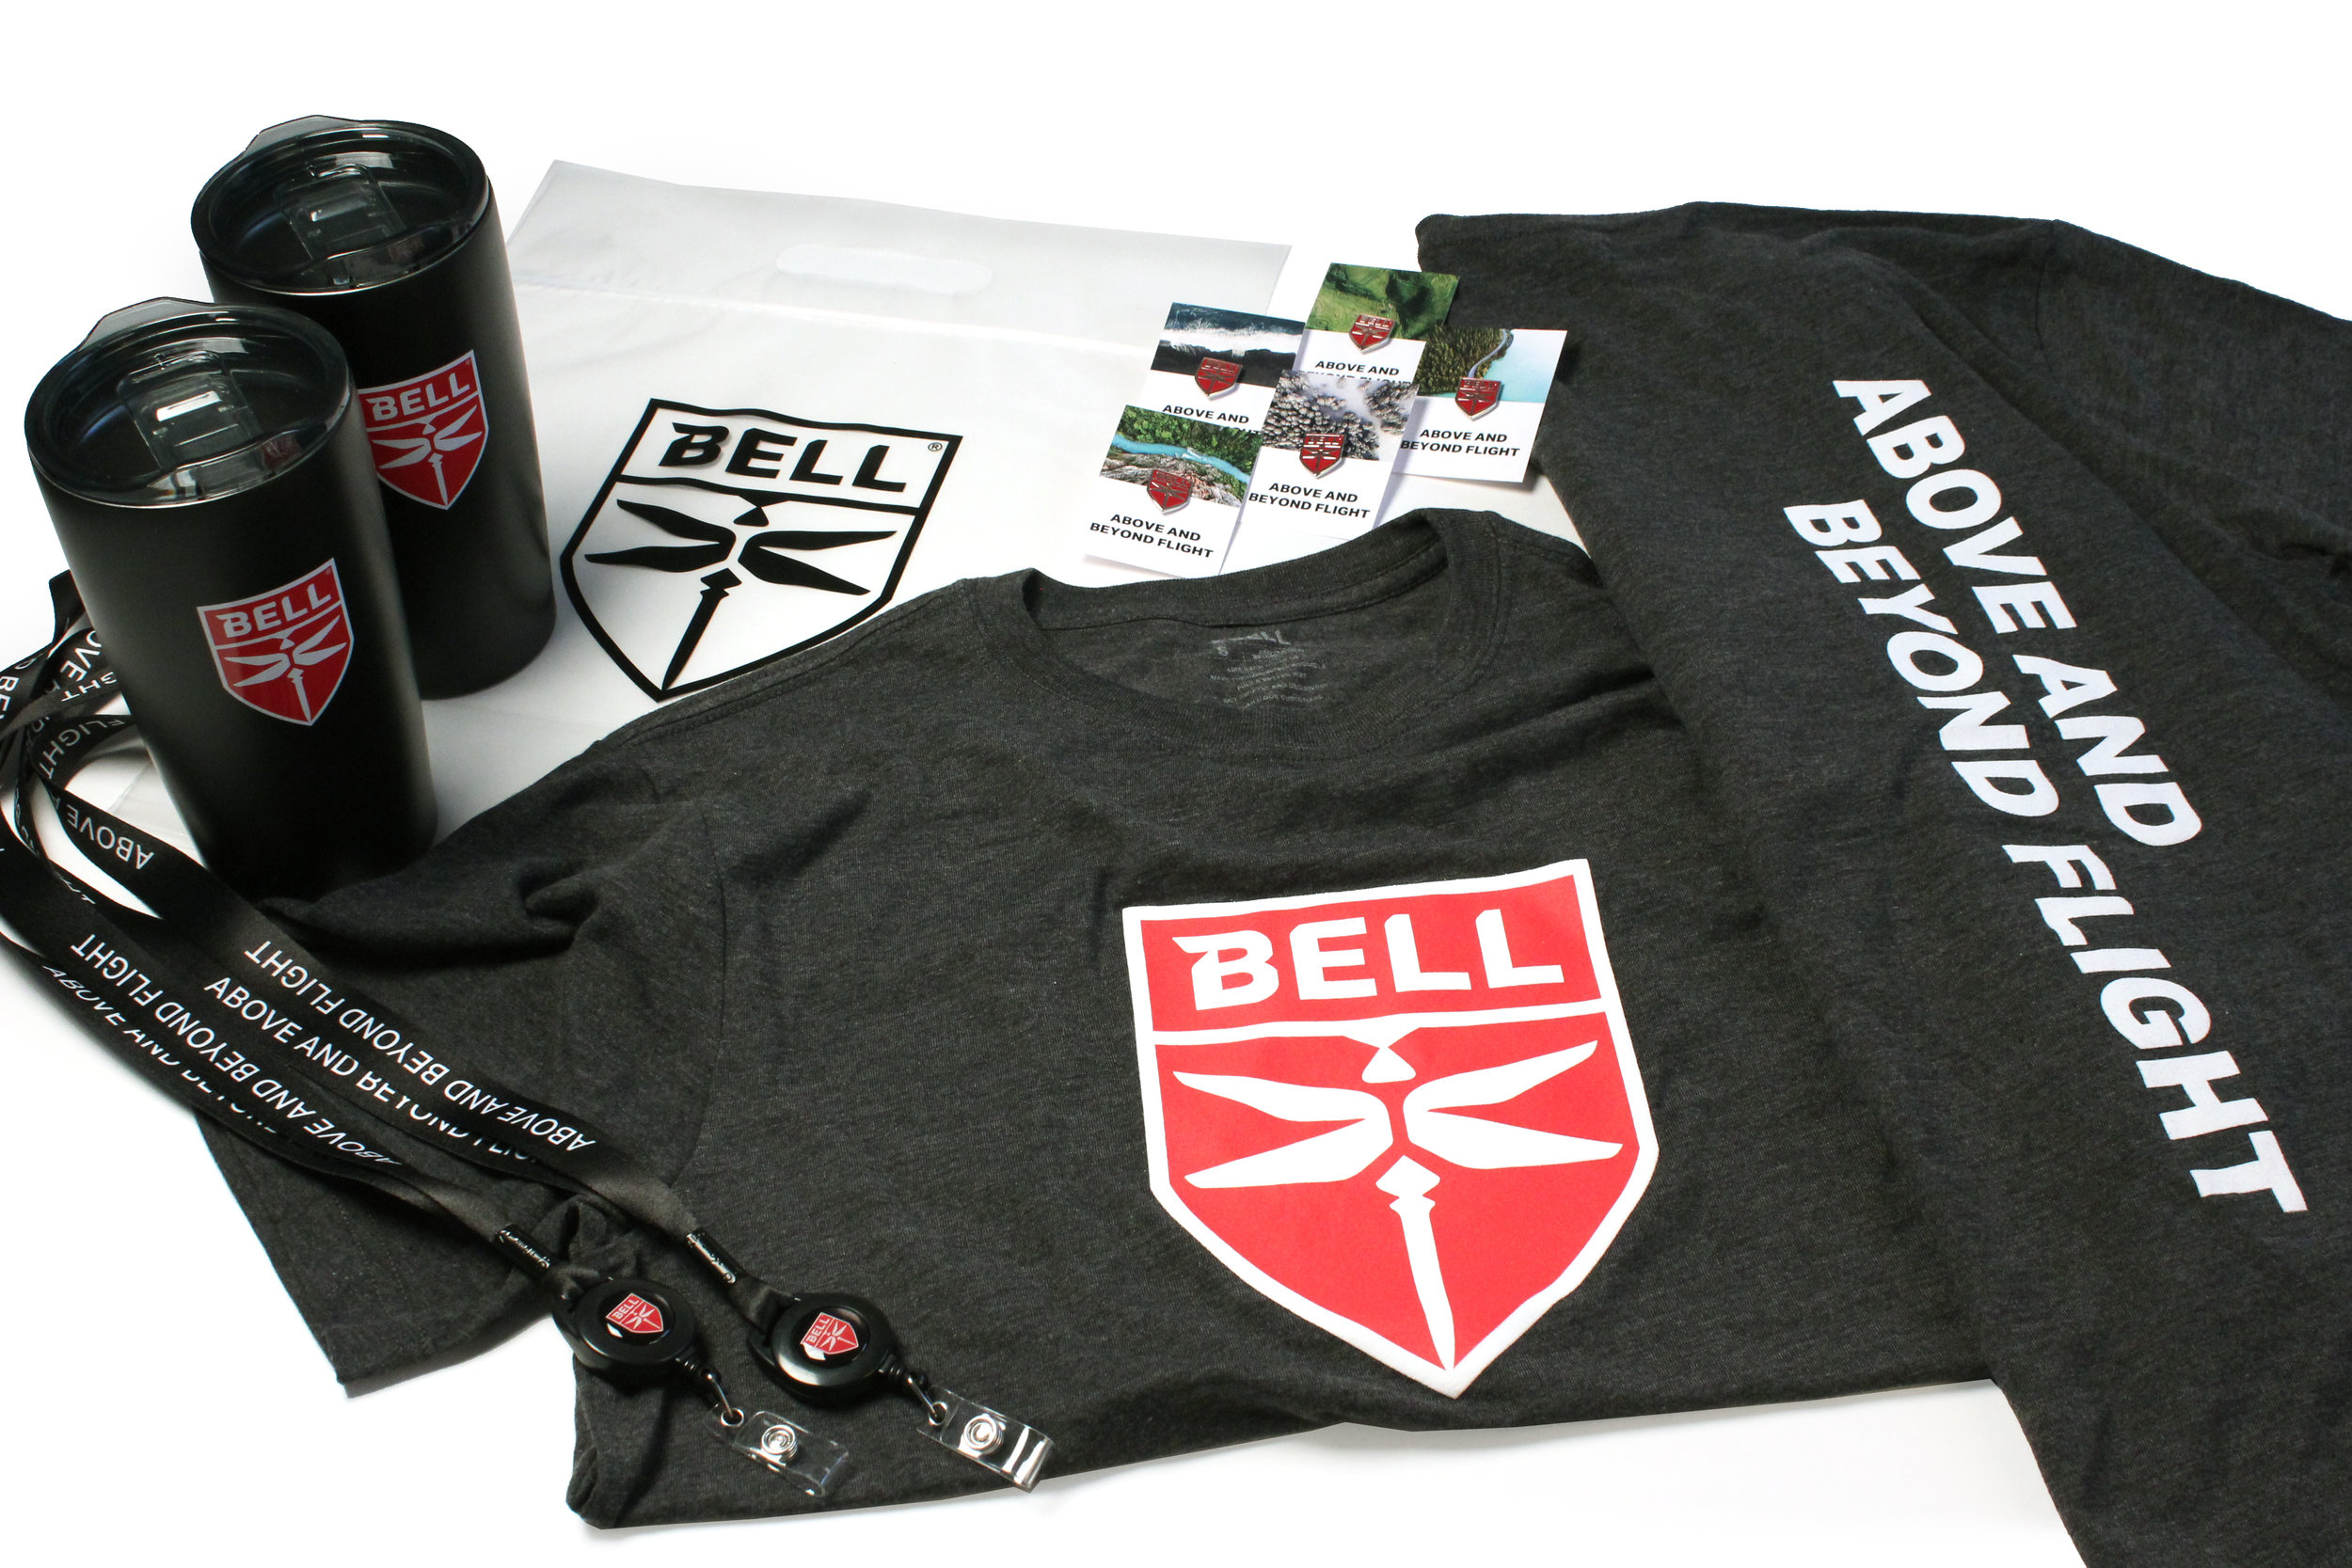 Bell-Launch-FullSet 1.jpg